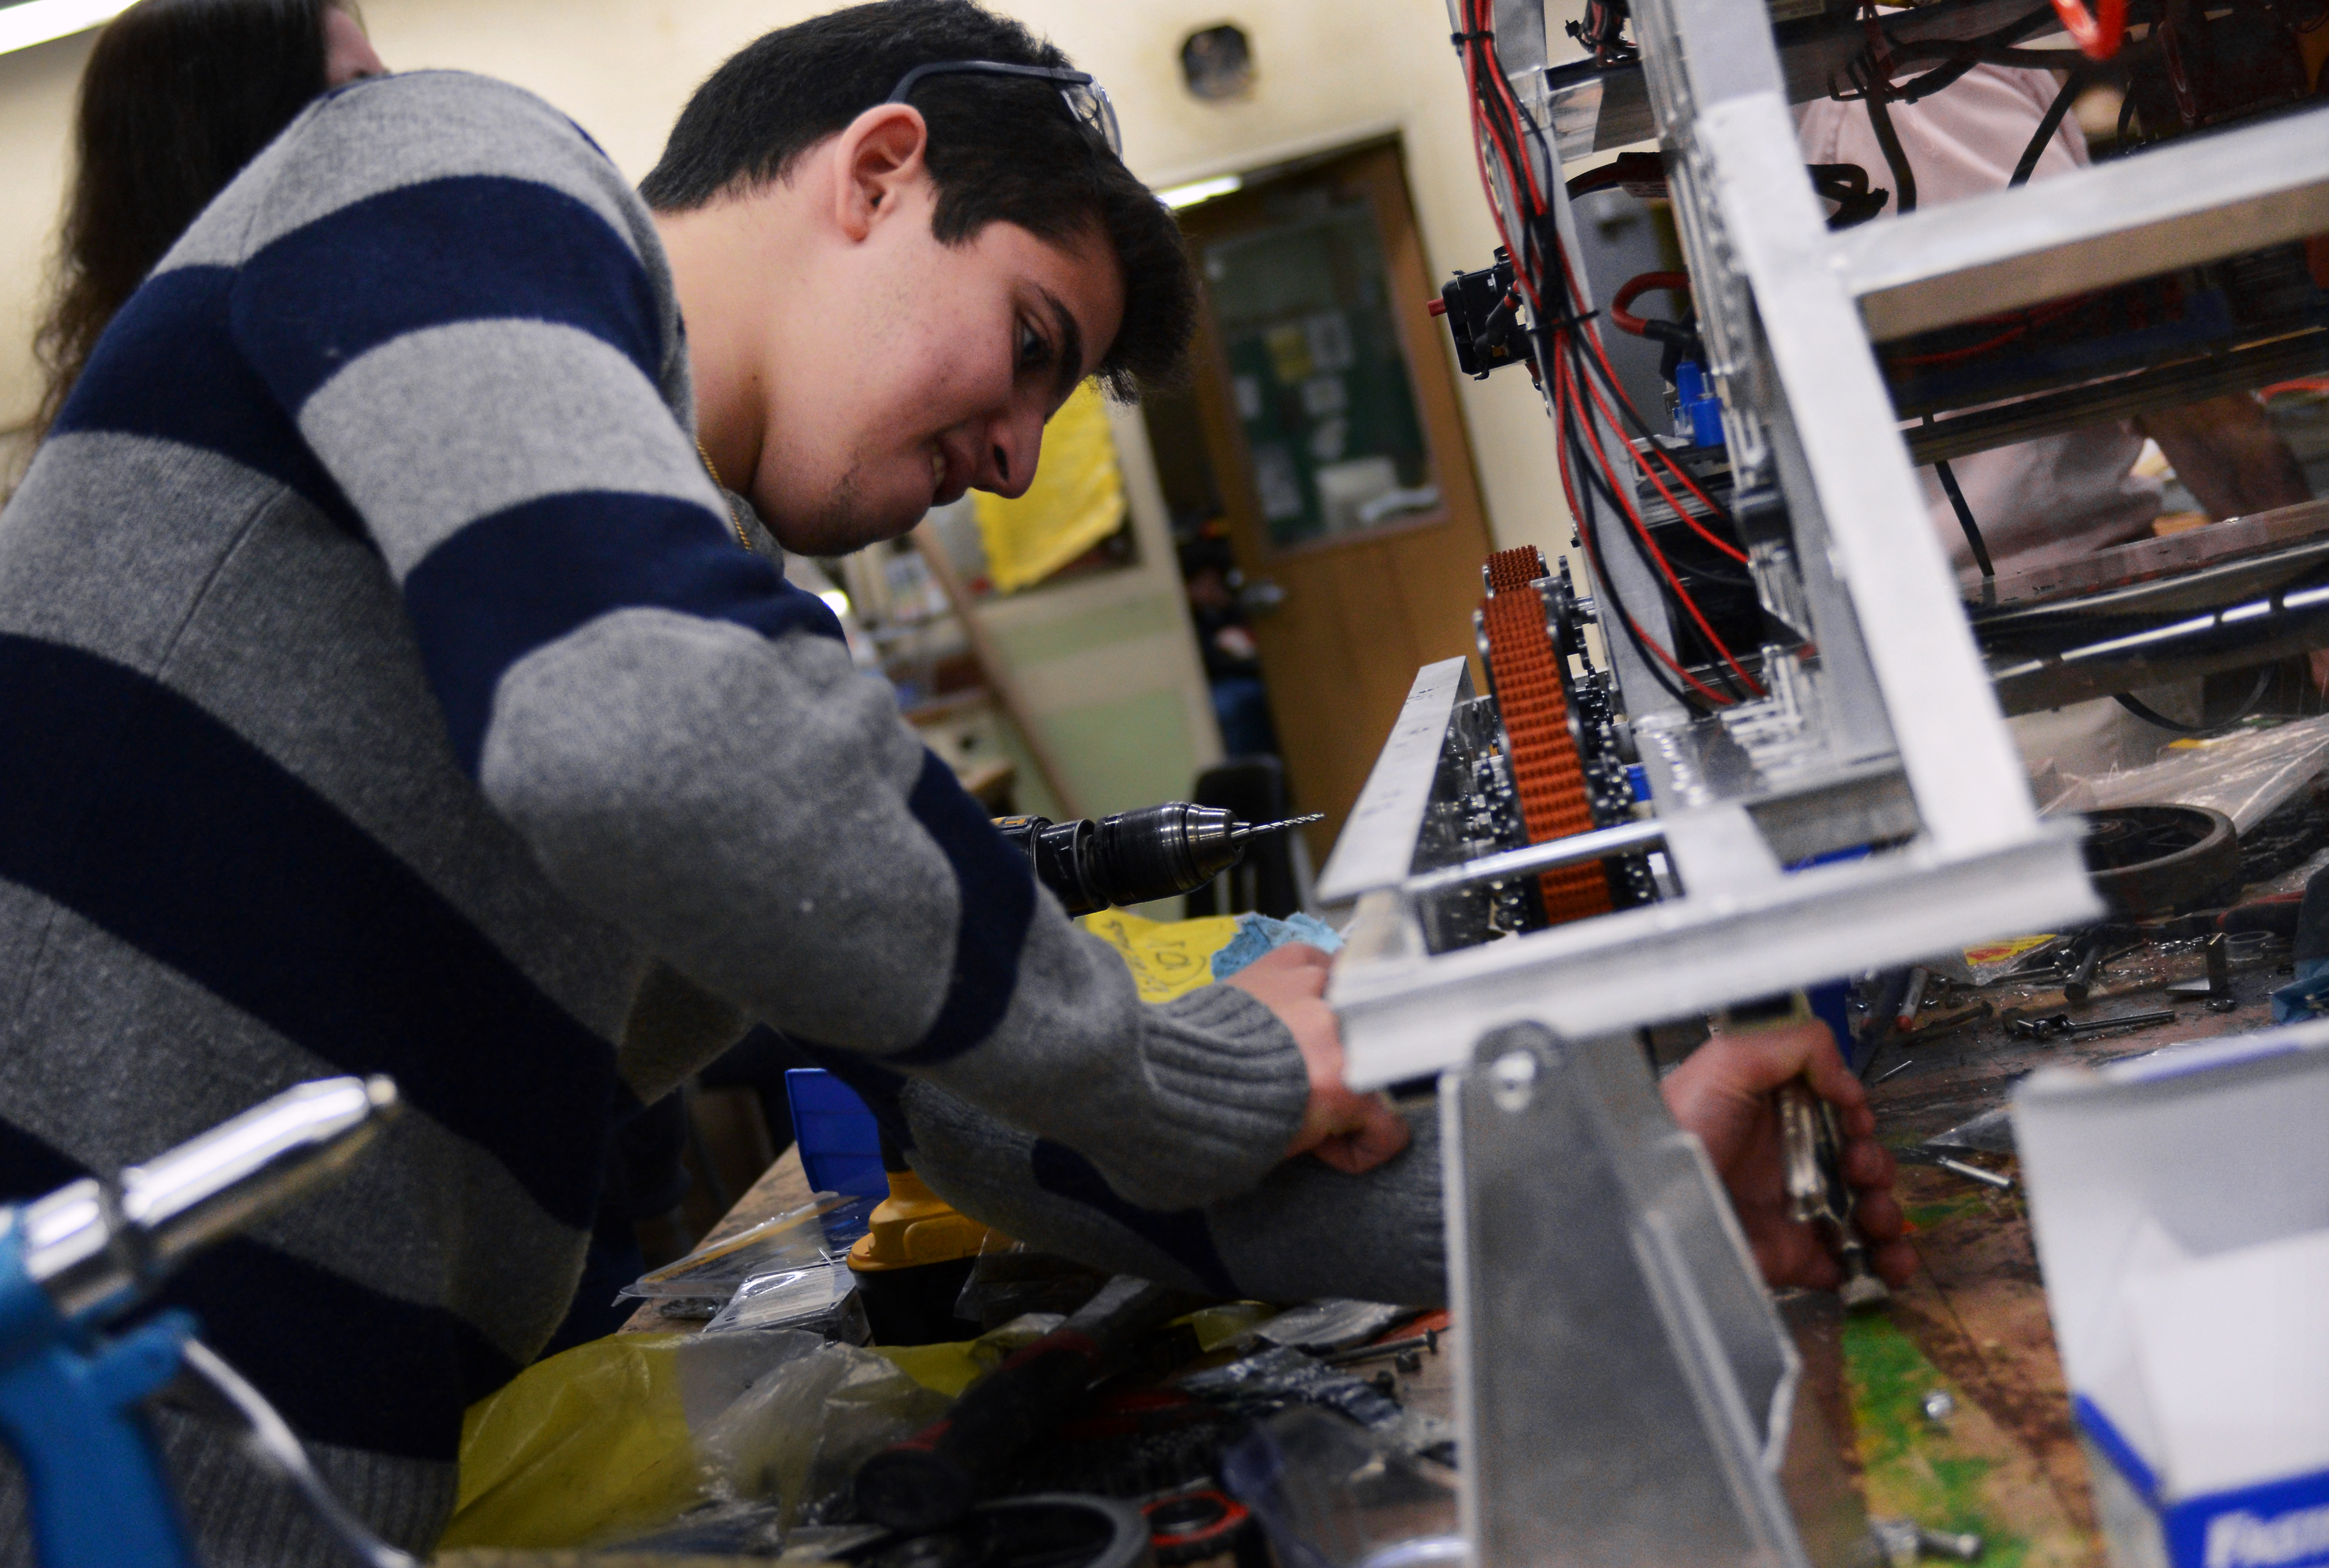 UCLA engineering students put expertise to use by ...